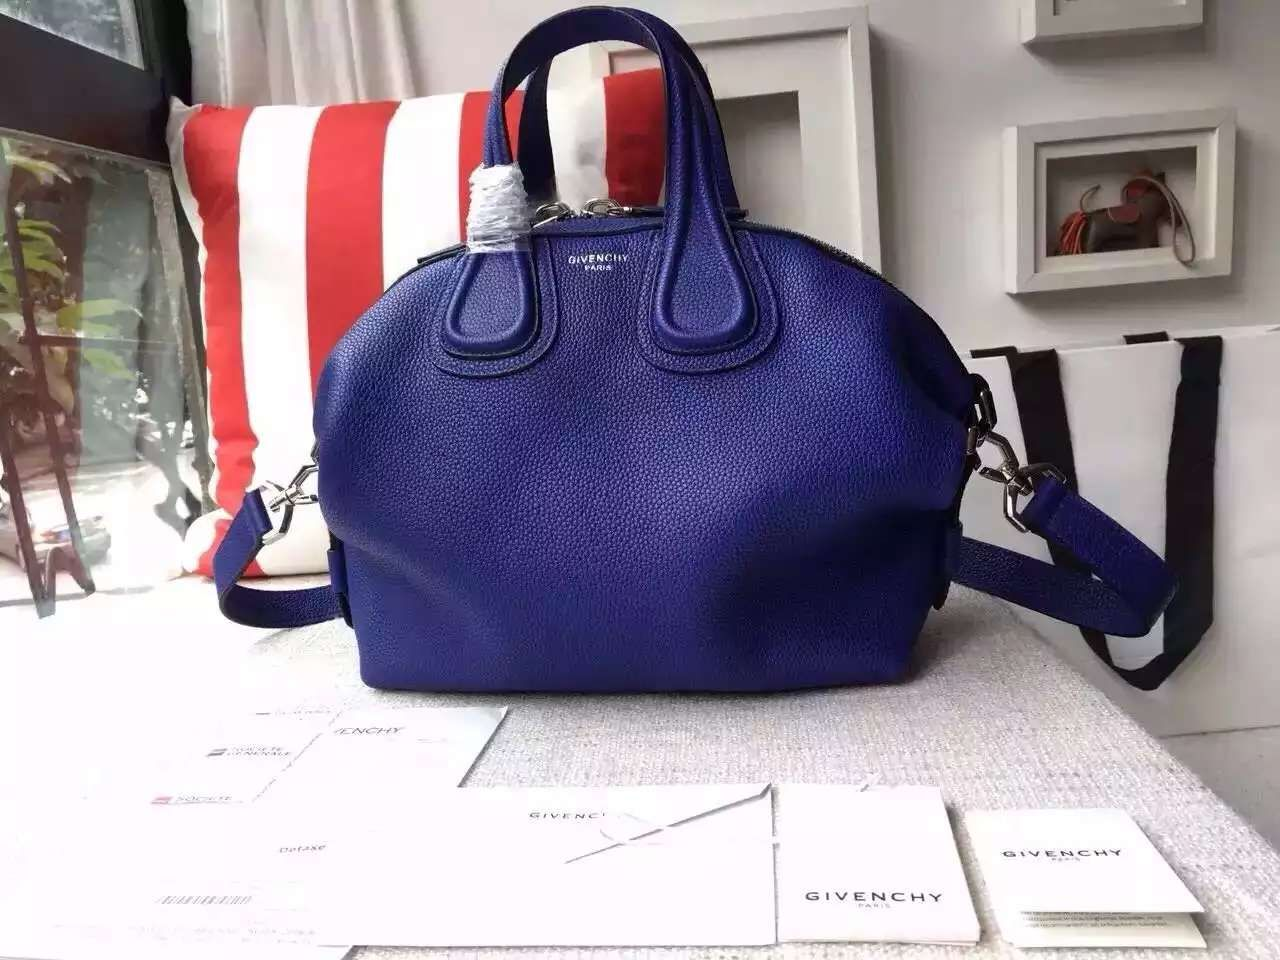 5f09d17237 Spring 2016 Givenchy Collection Outlet-Givenchy Nightingale Bag in Royal  Blue Togo Leather